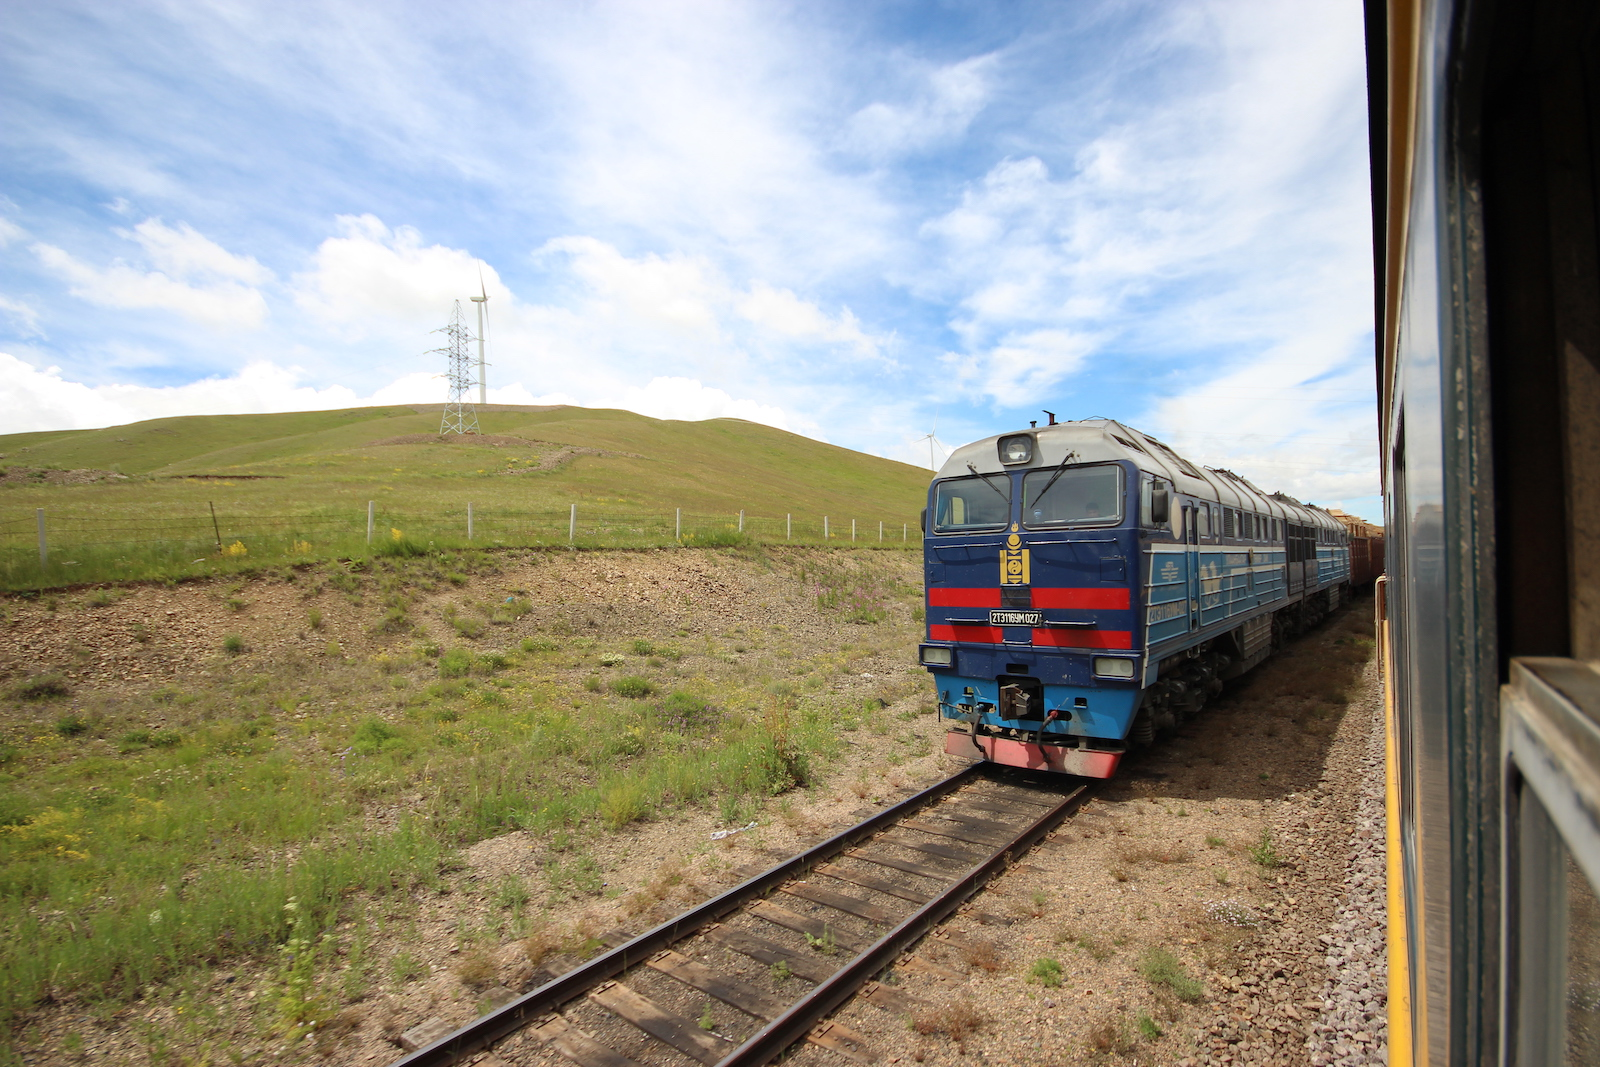 Trains in Mongolia